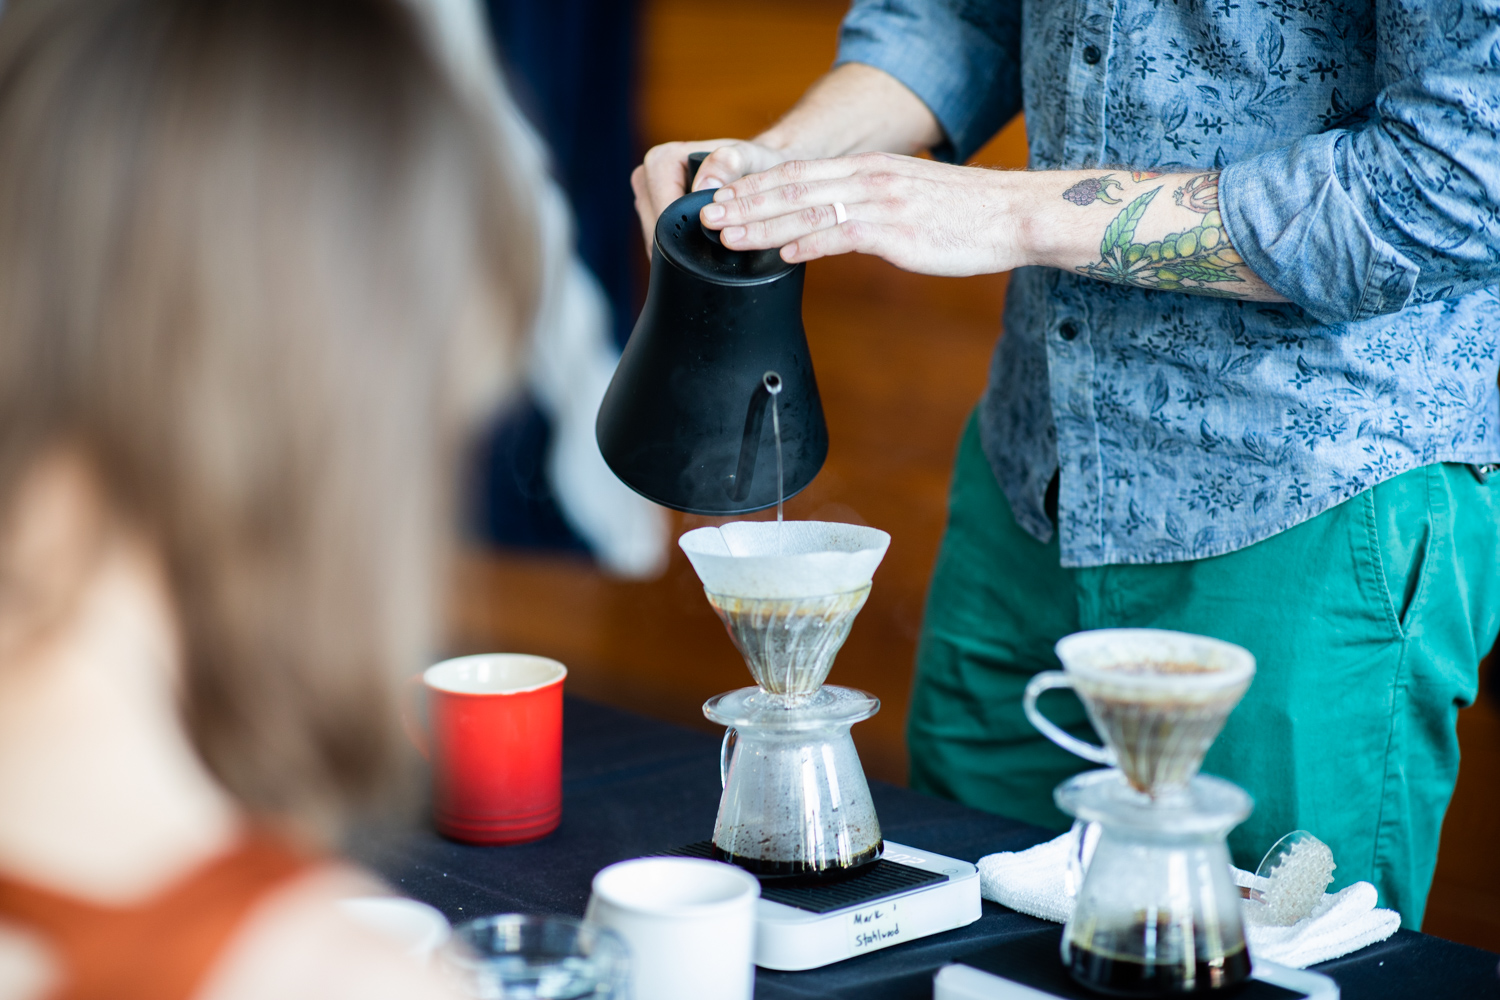 Competing in the Brewers Cup.